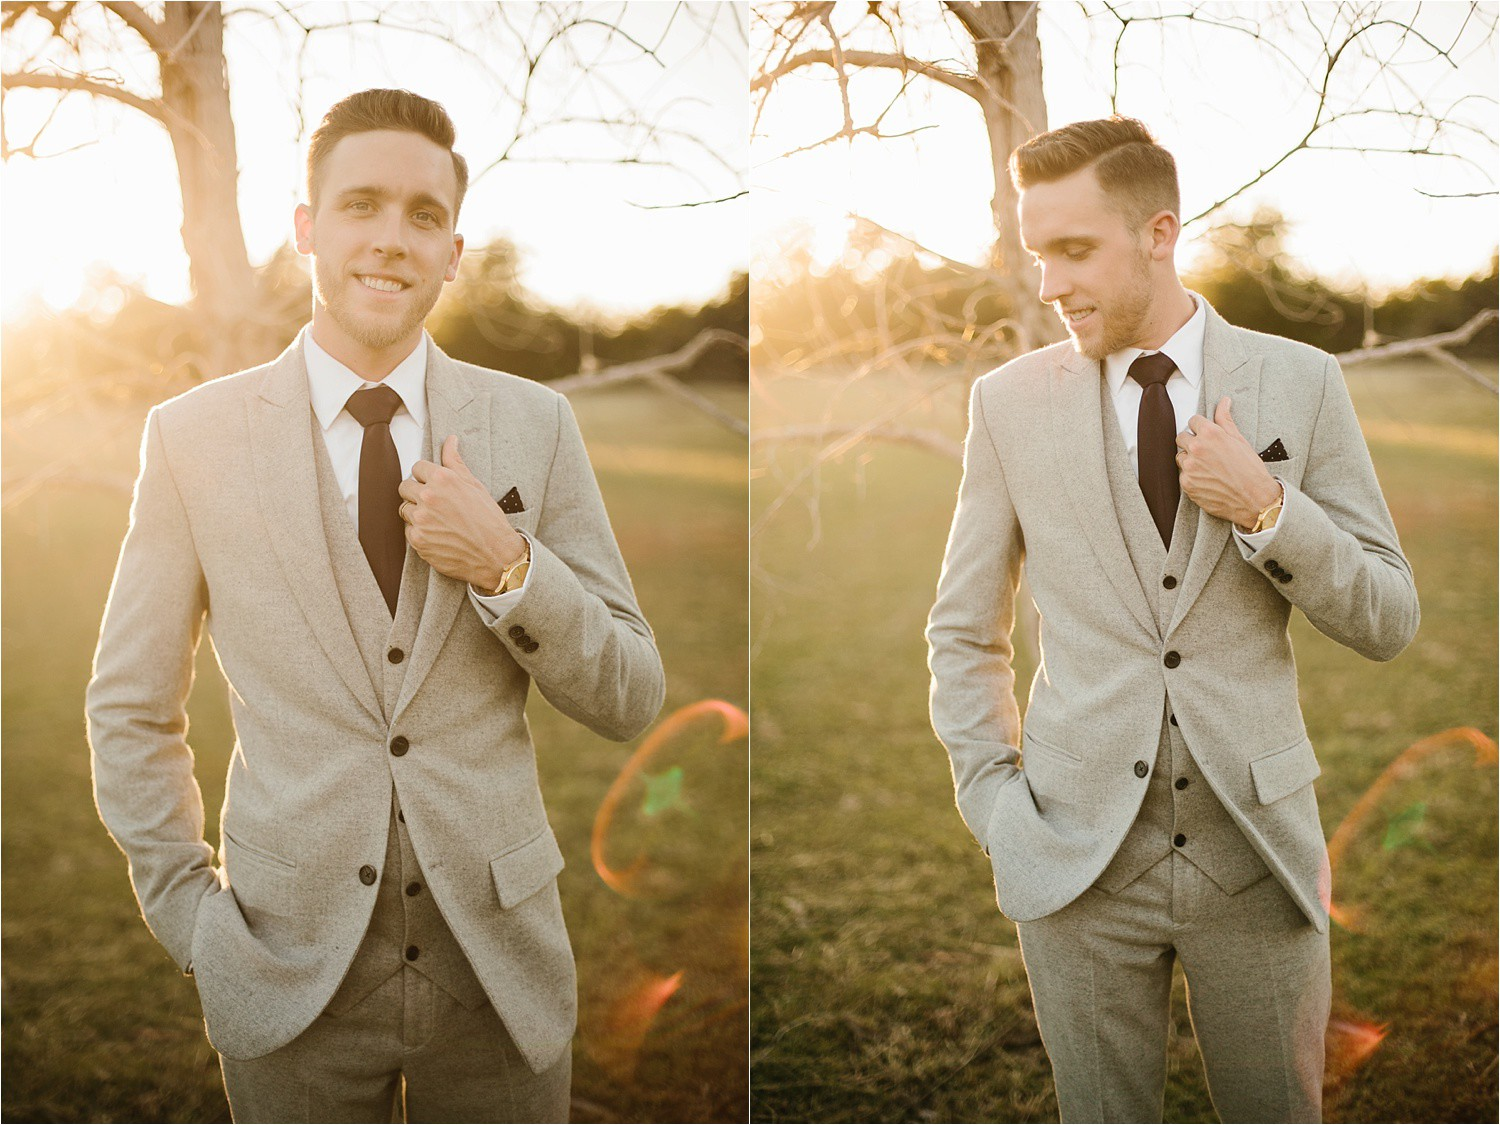 mallory-tyler-__-an-intimate-after-session-at-grapevine-lake-by-north-texas-wedding-photographer-rachel-meagan-photography-_-38